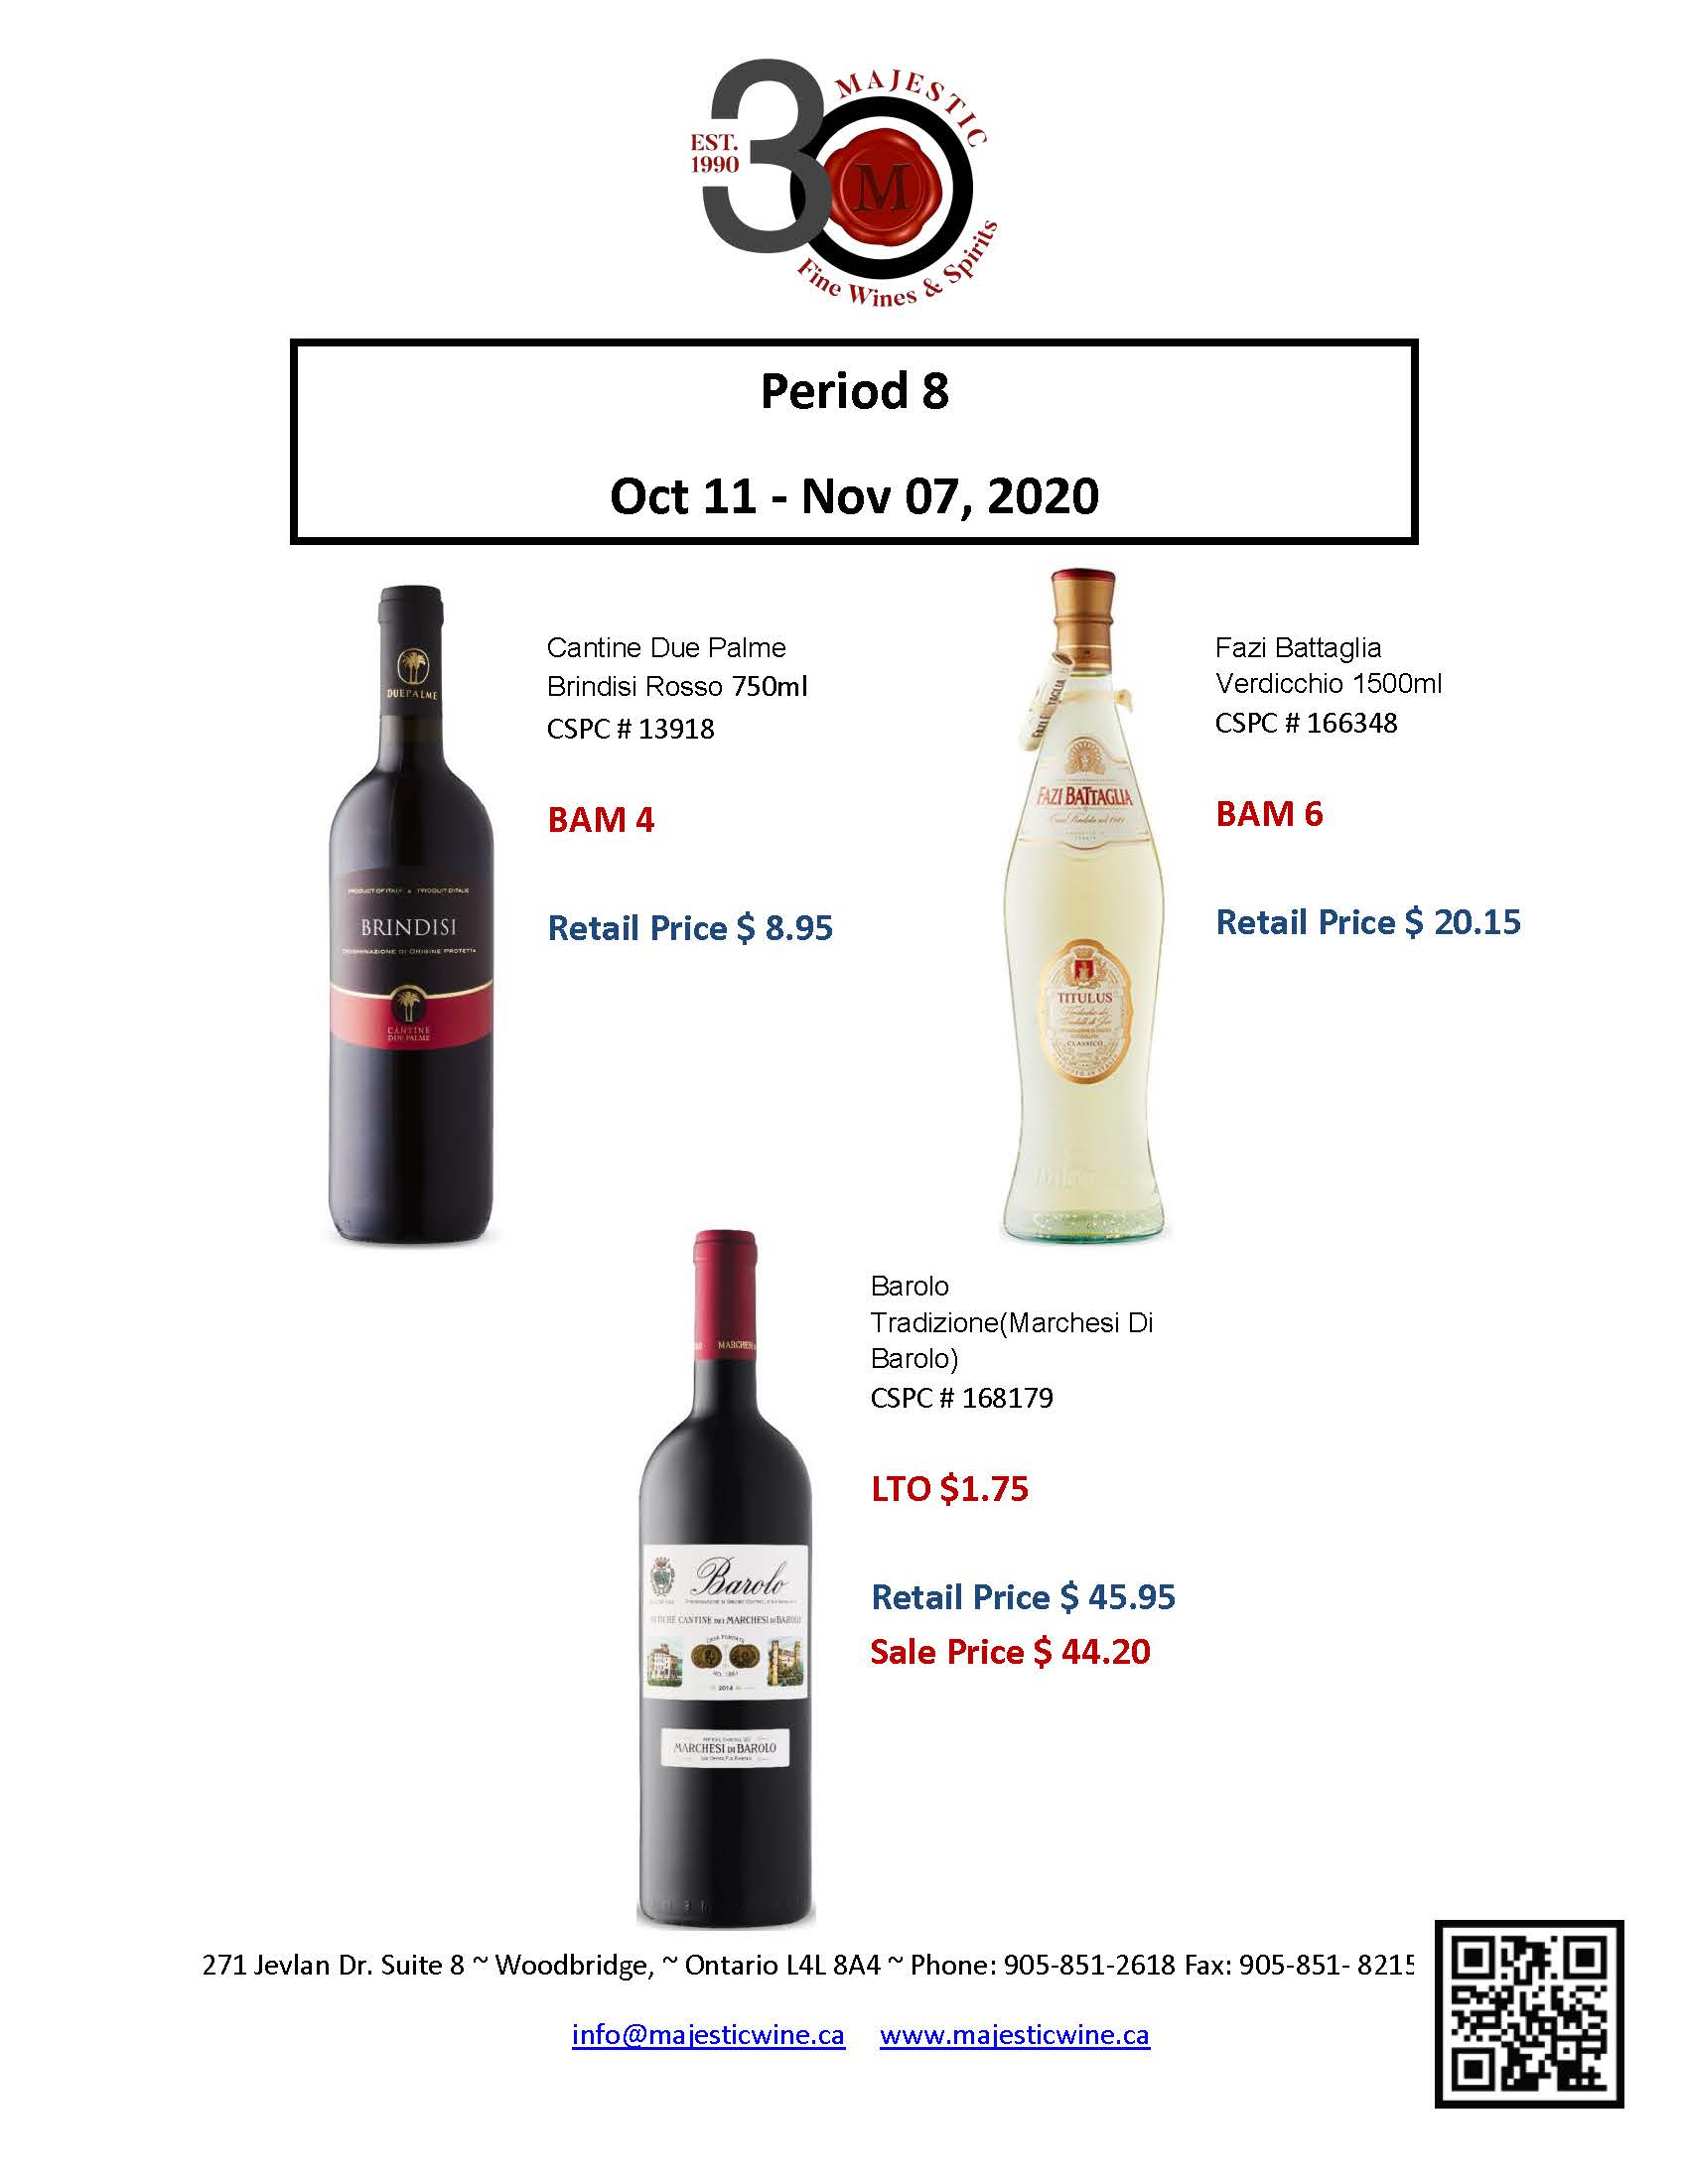 Period 8 - October 11th - November 7th Promotion